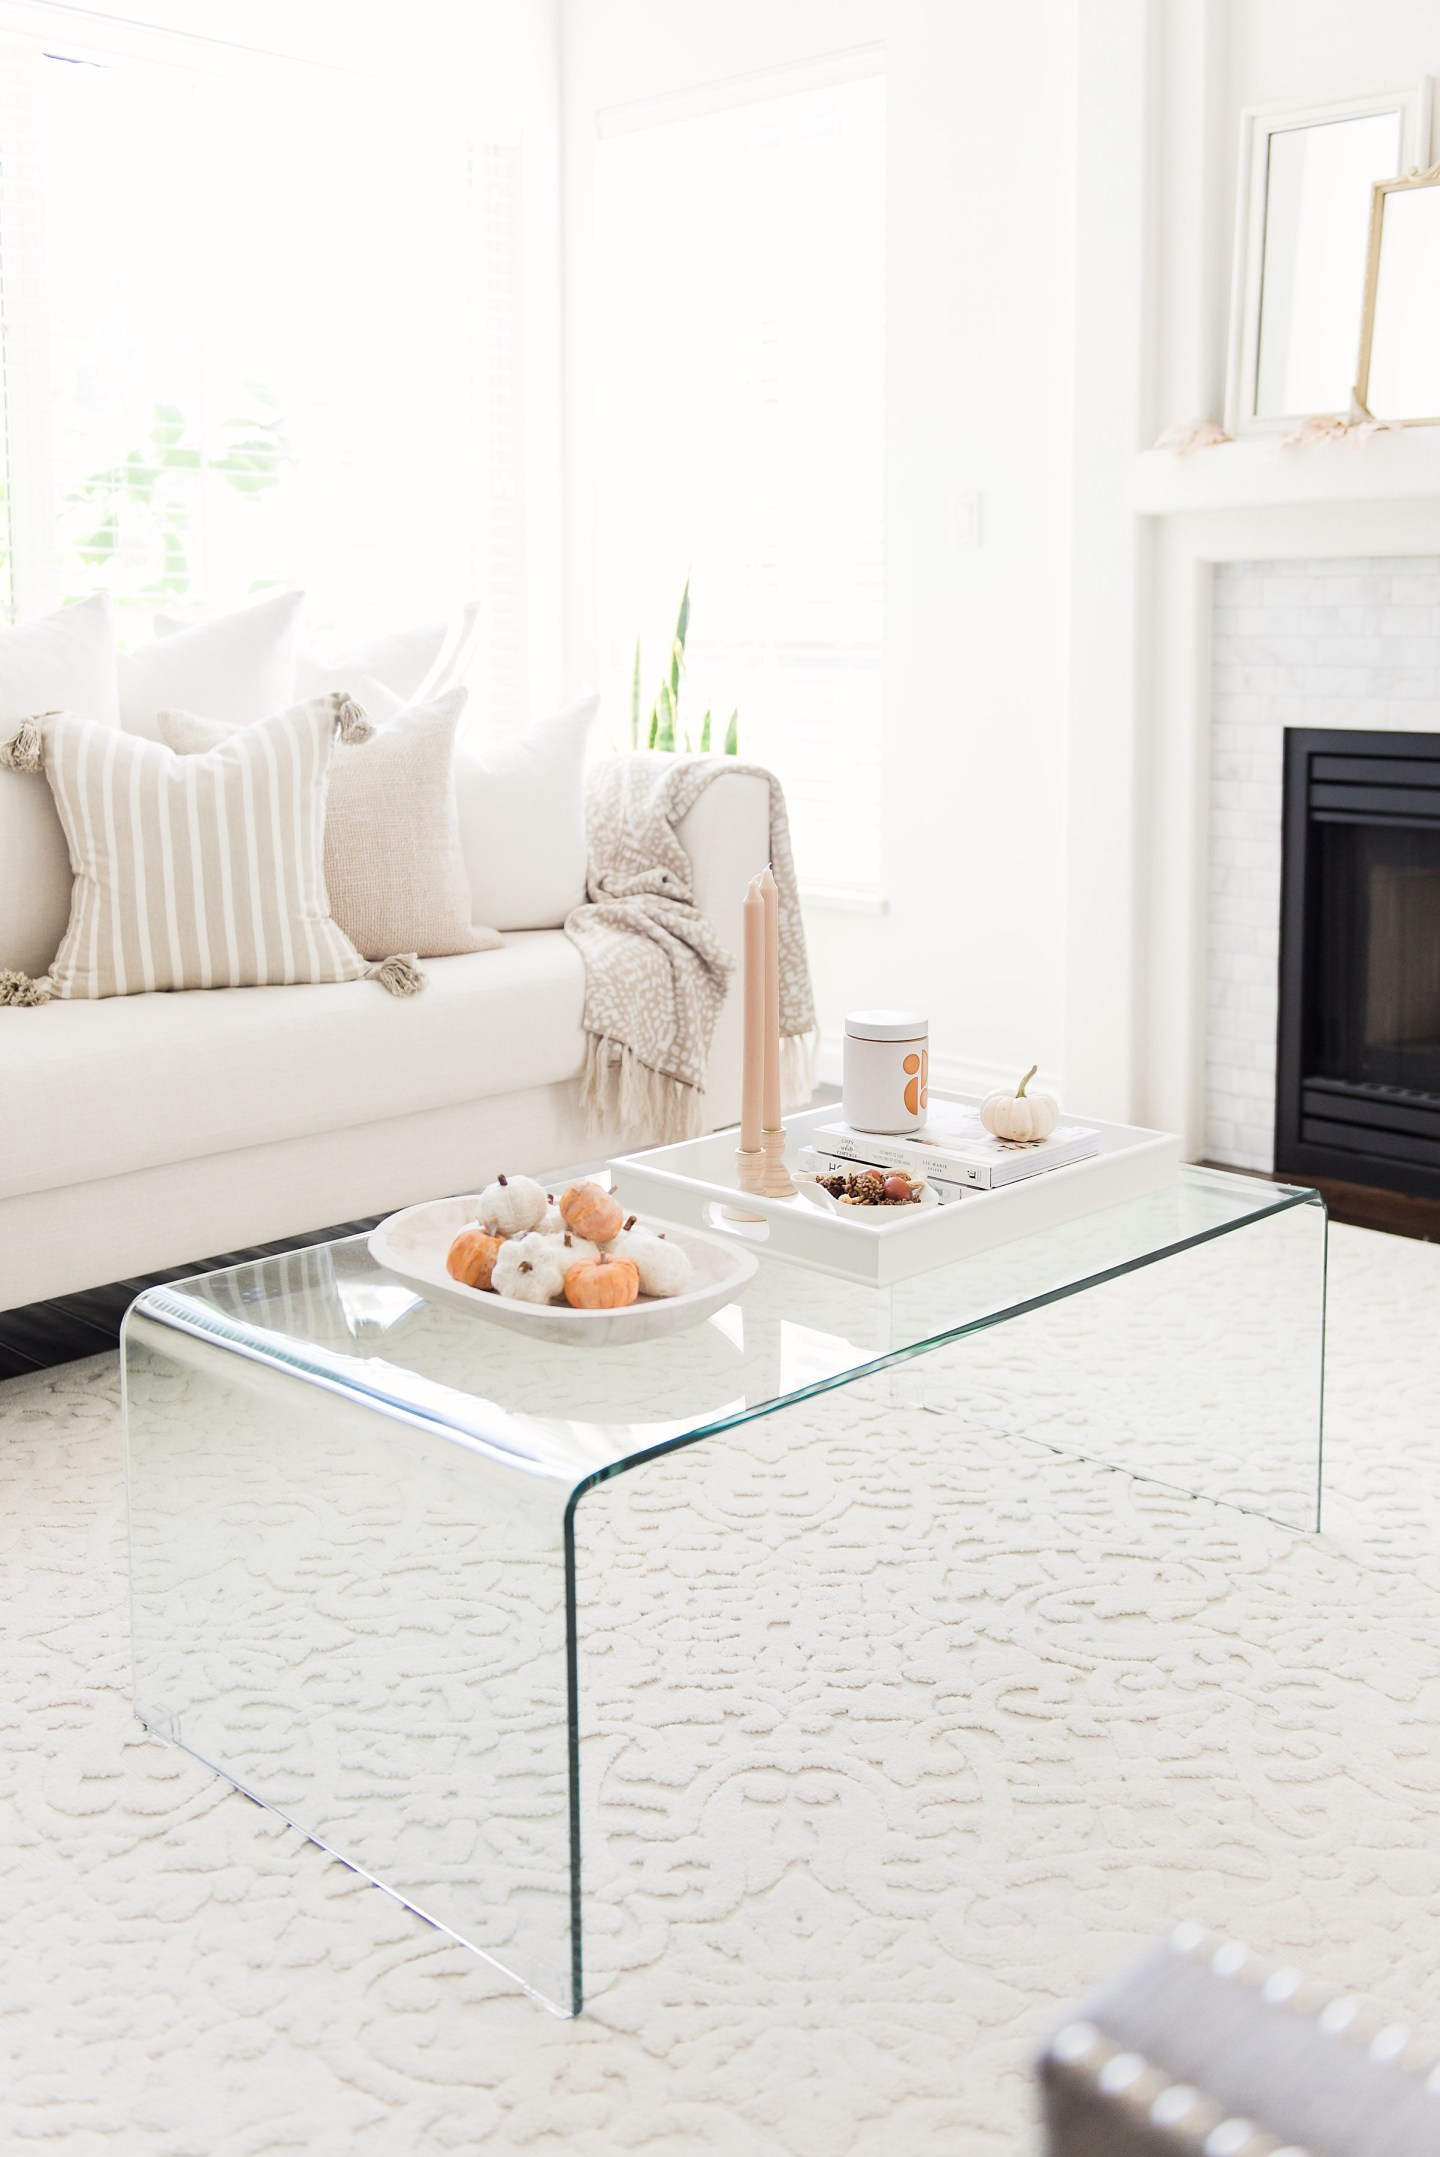 Fall Home Tour 2020: All About Those Neutrals